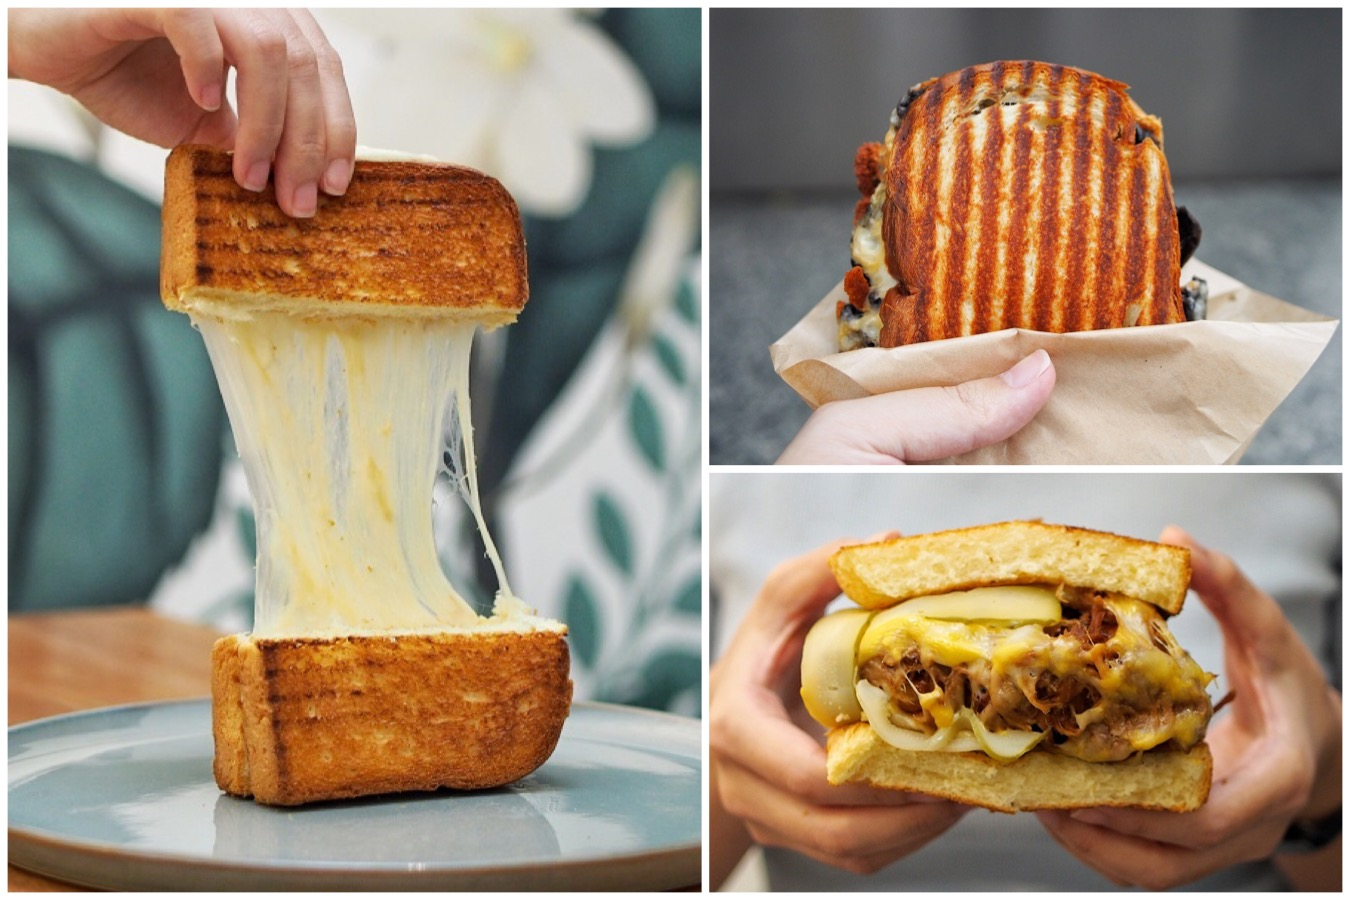 52 Sandwich Shack - Stretchy Cheese Toast Sandwich